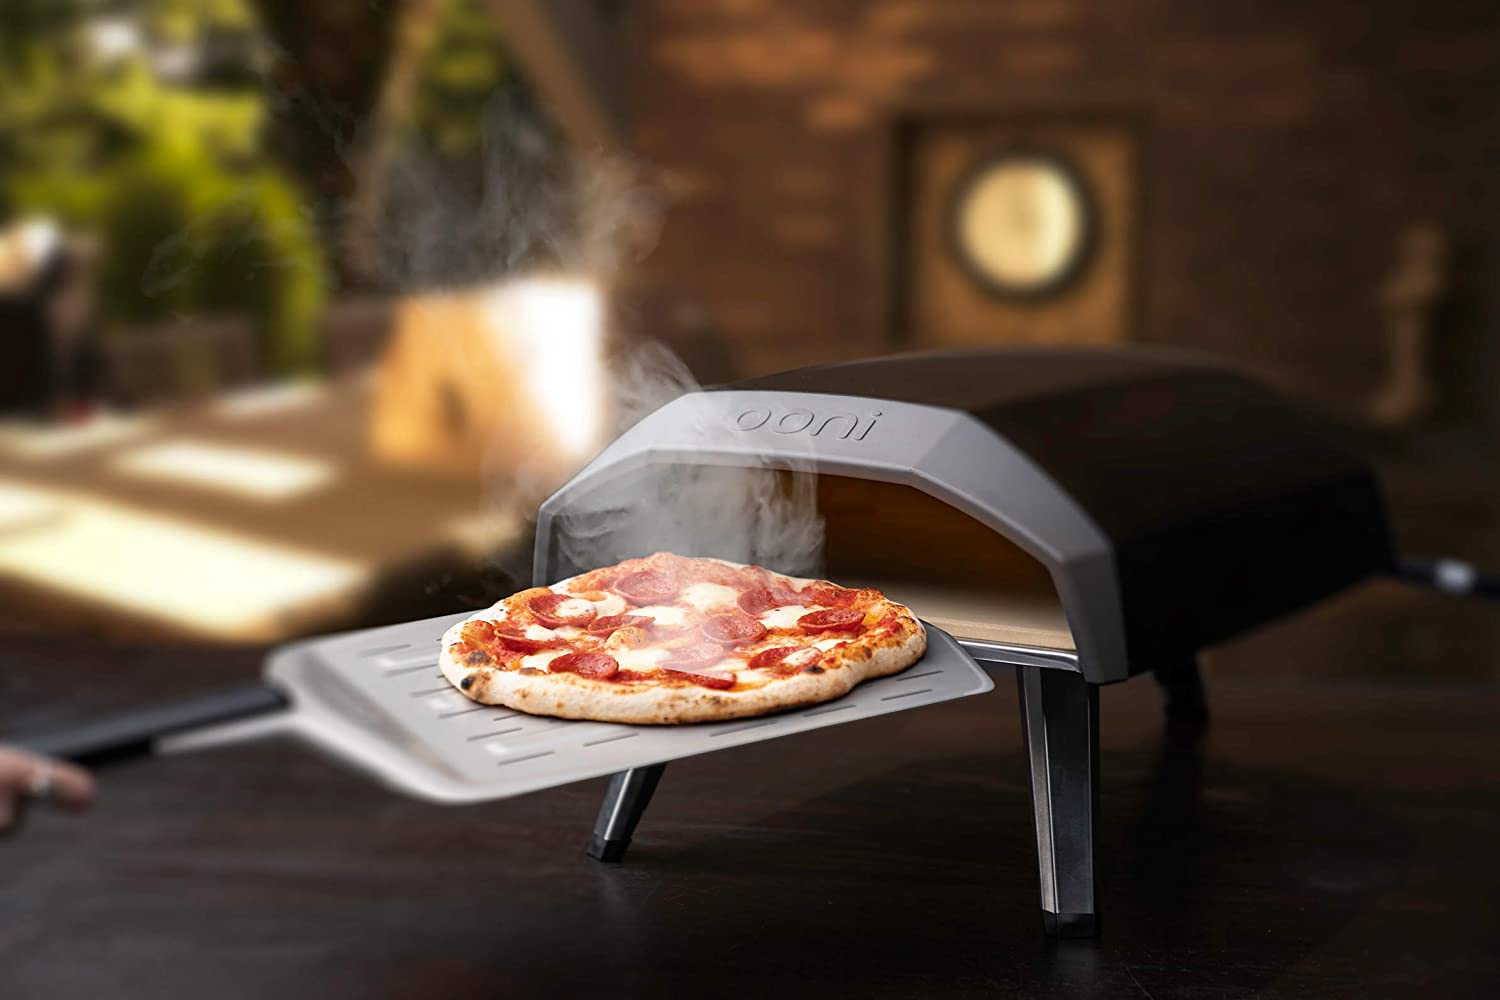 Ooni Koda   Outdoor Pizza Oven   Gas-Powered   Super Compact and Portable